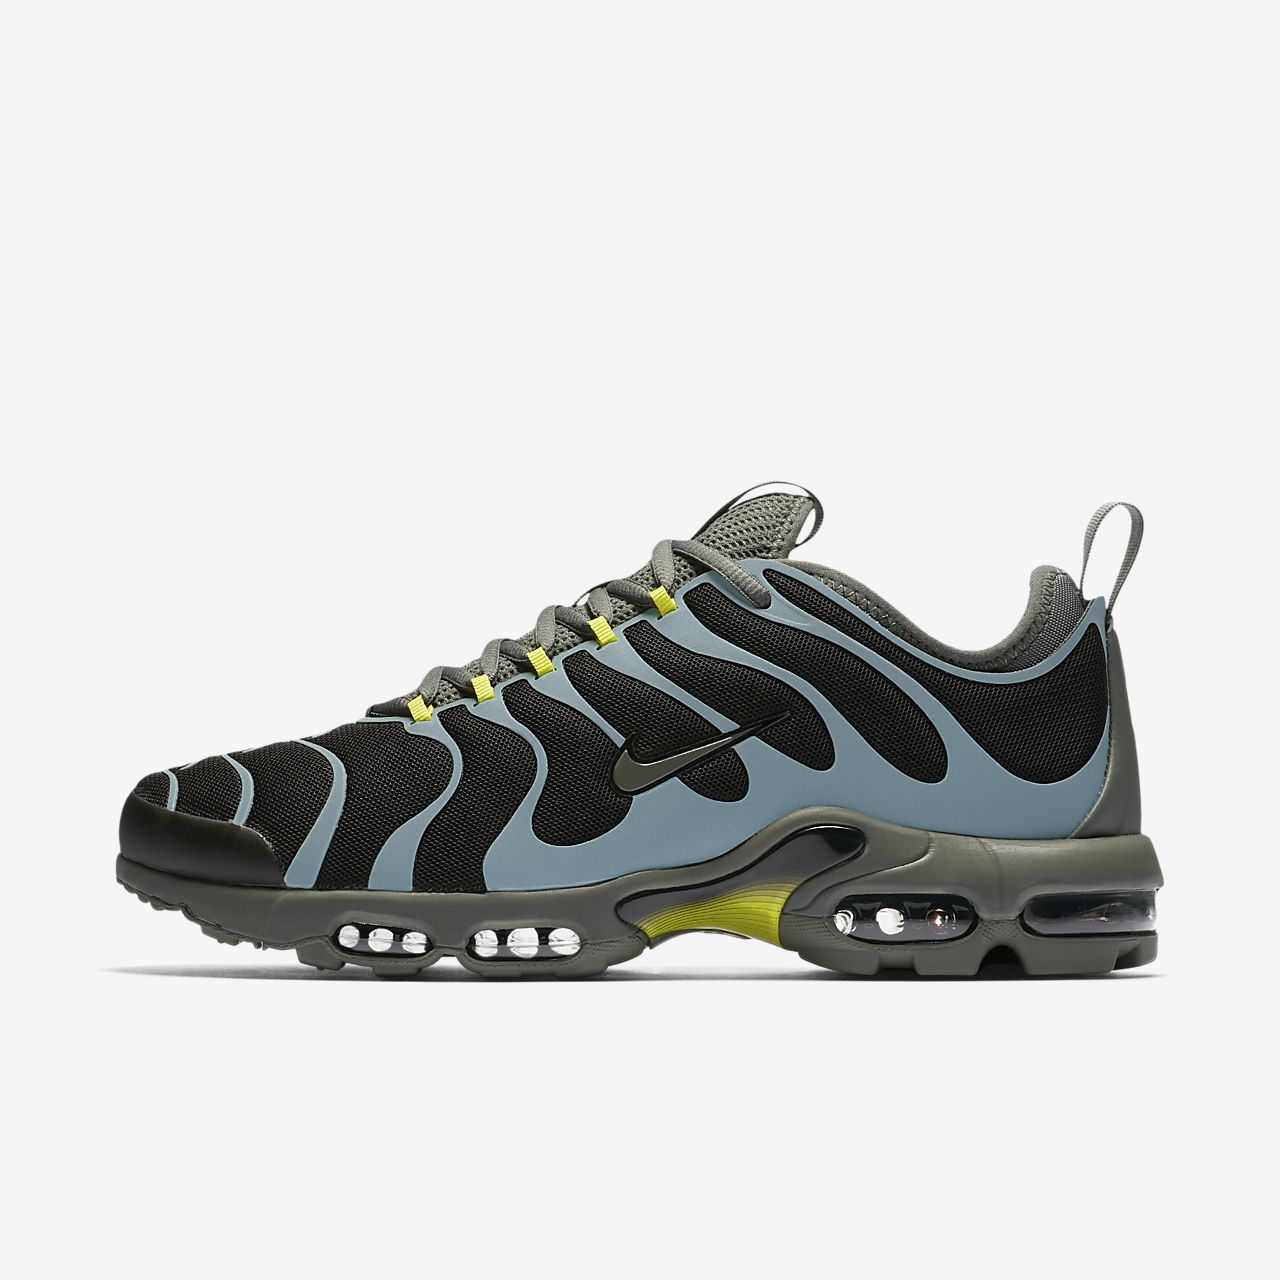 Nike Air Max Tn Plus Shoes